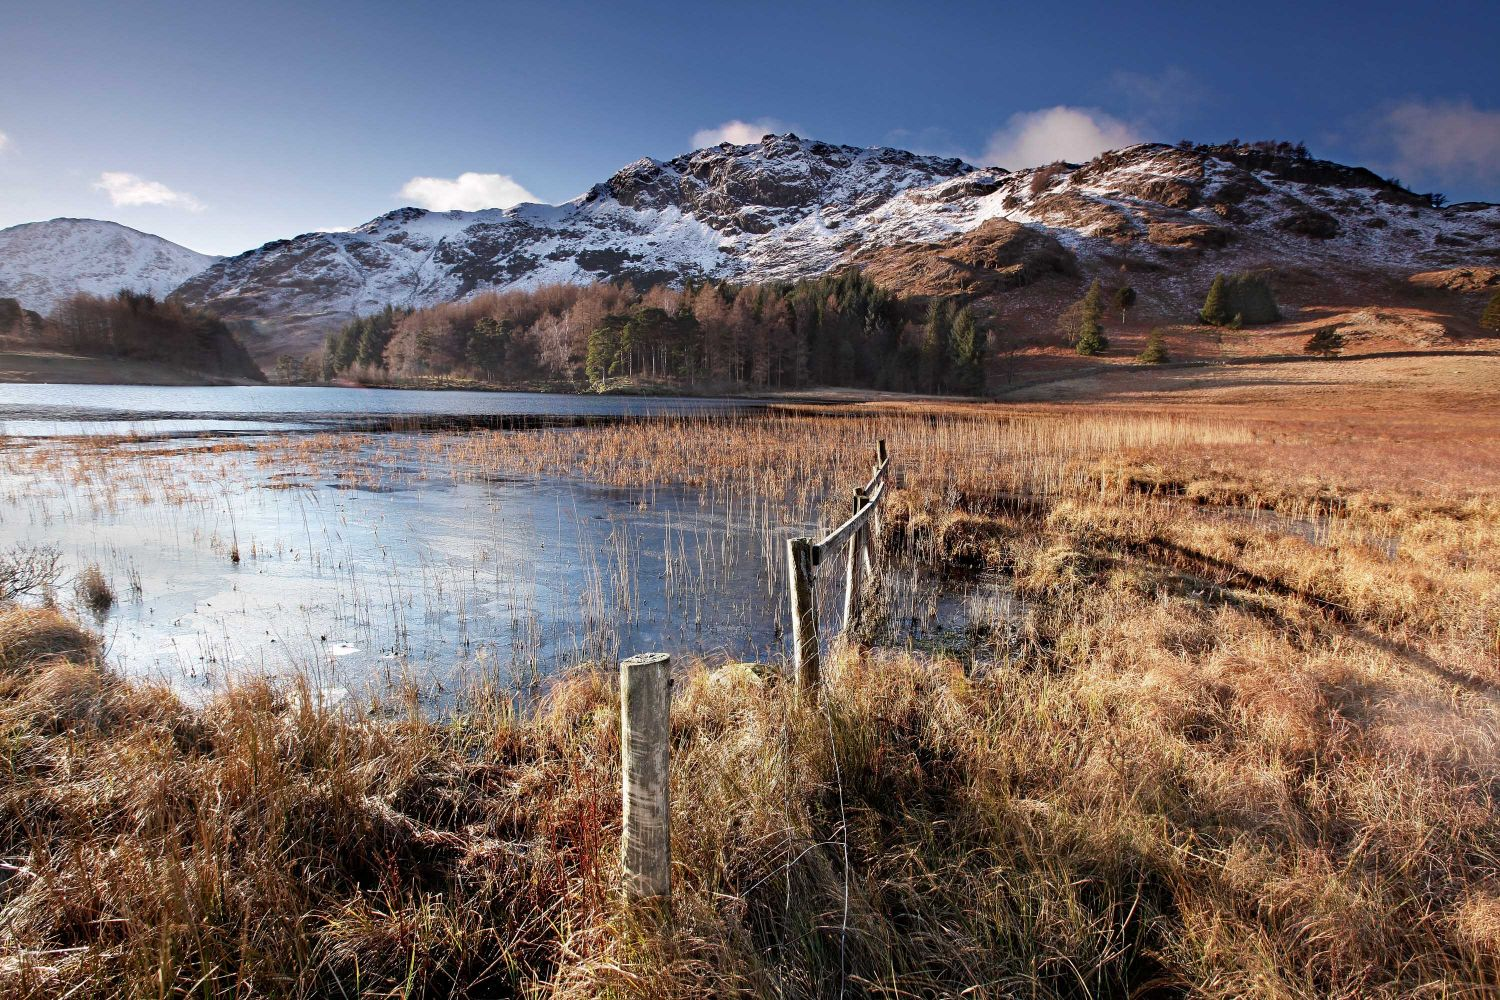 Blea Tarn Little Langdale with some early autumn snow